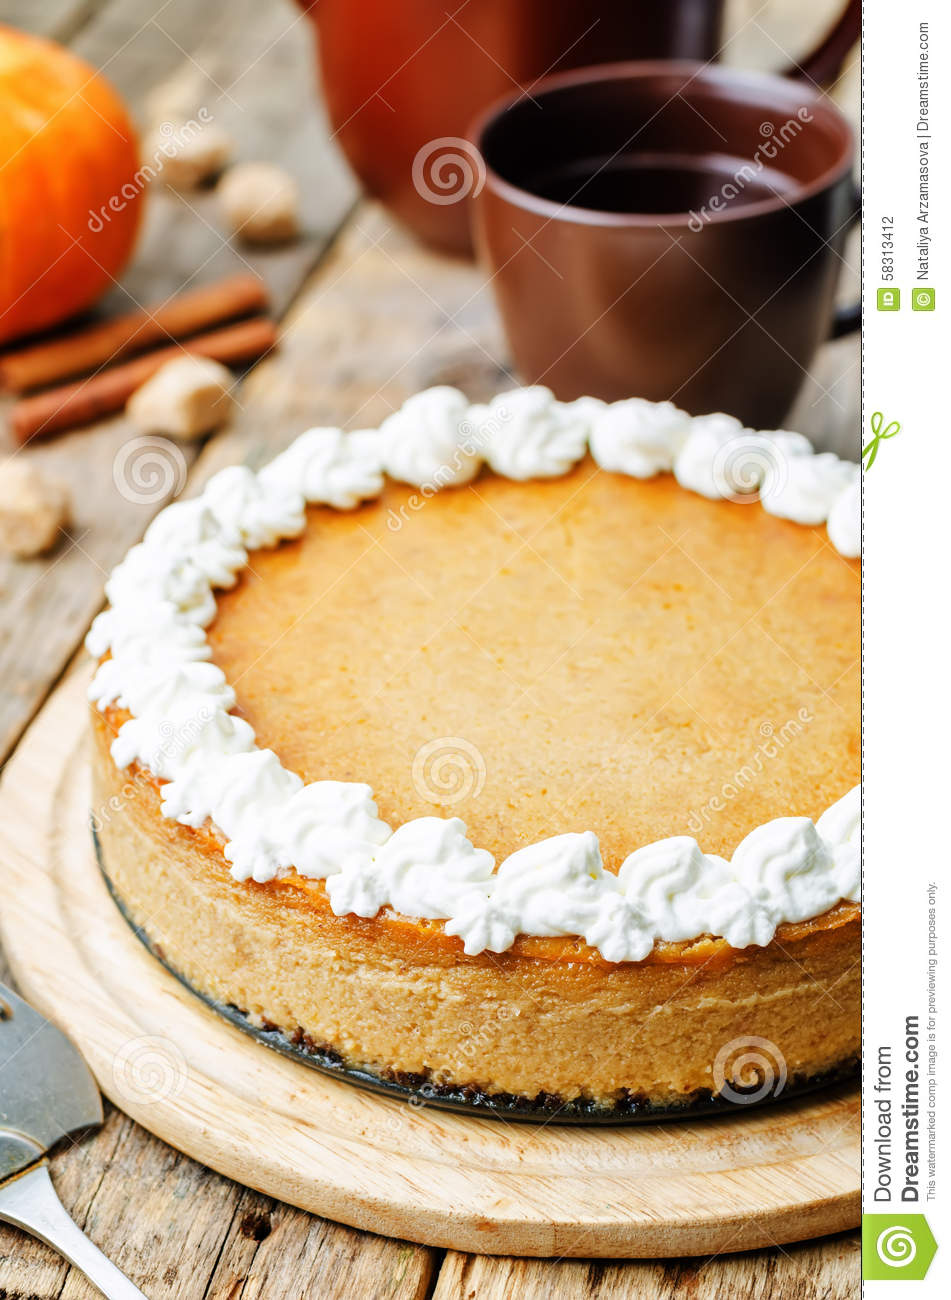 Pumpkin Cheesecake Decorated With Whipped Cream Stock Photo ...